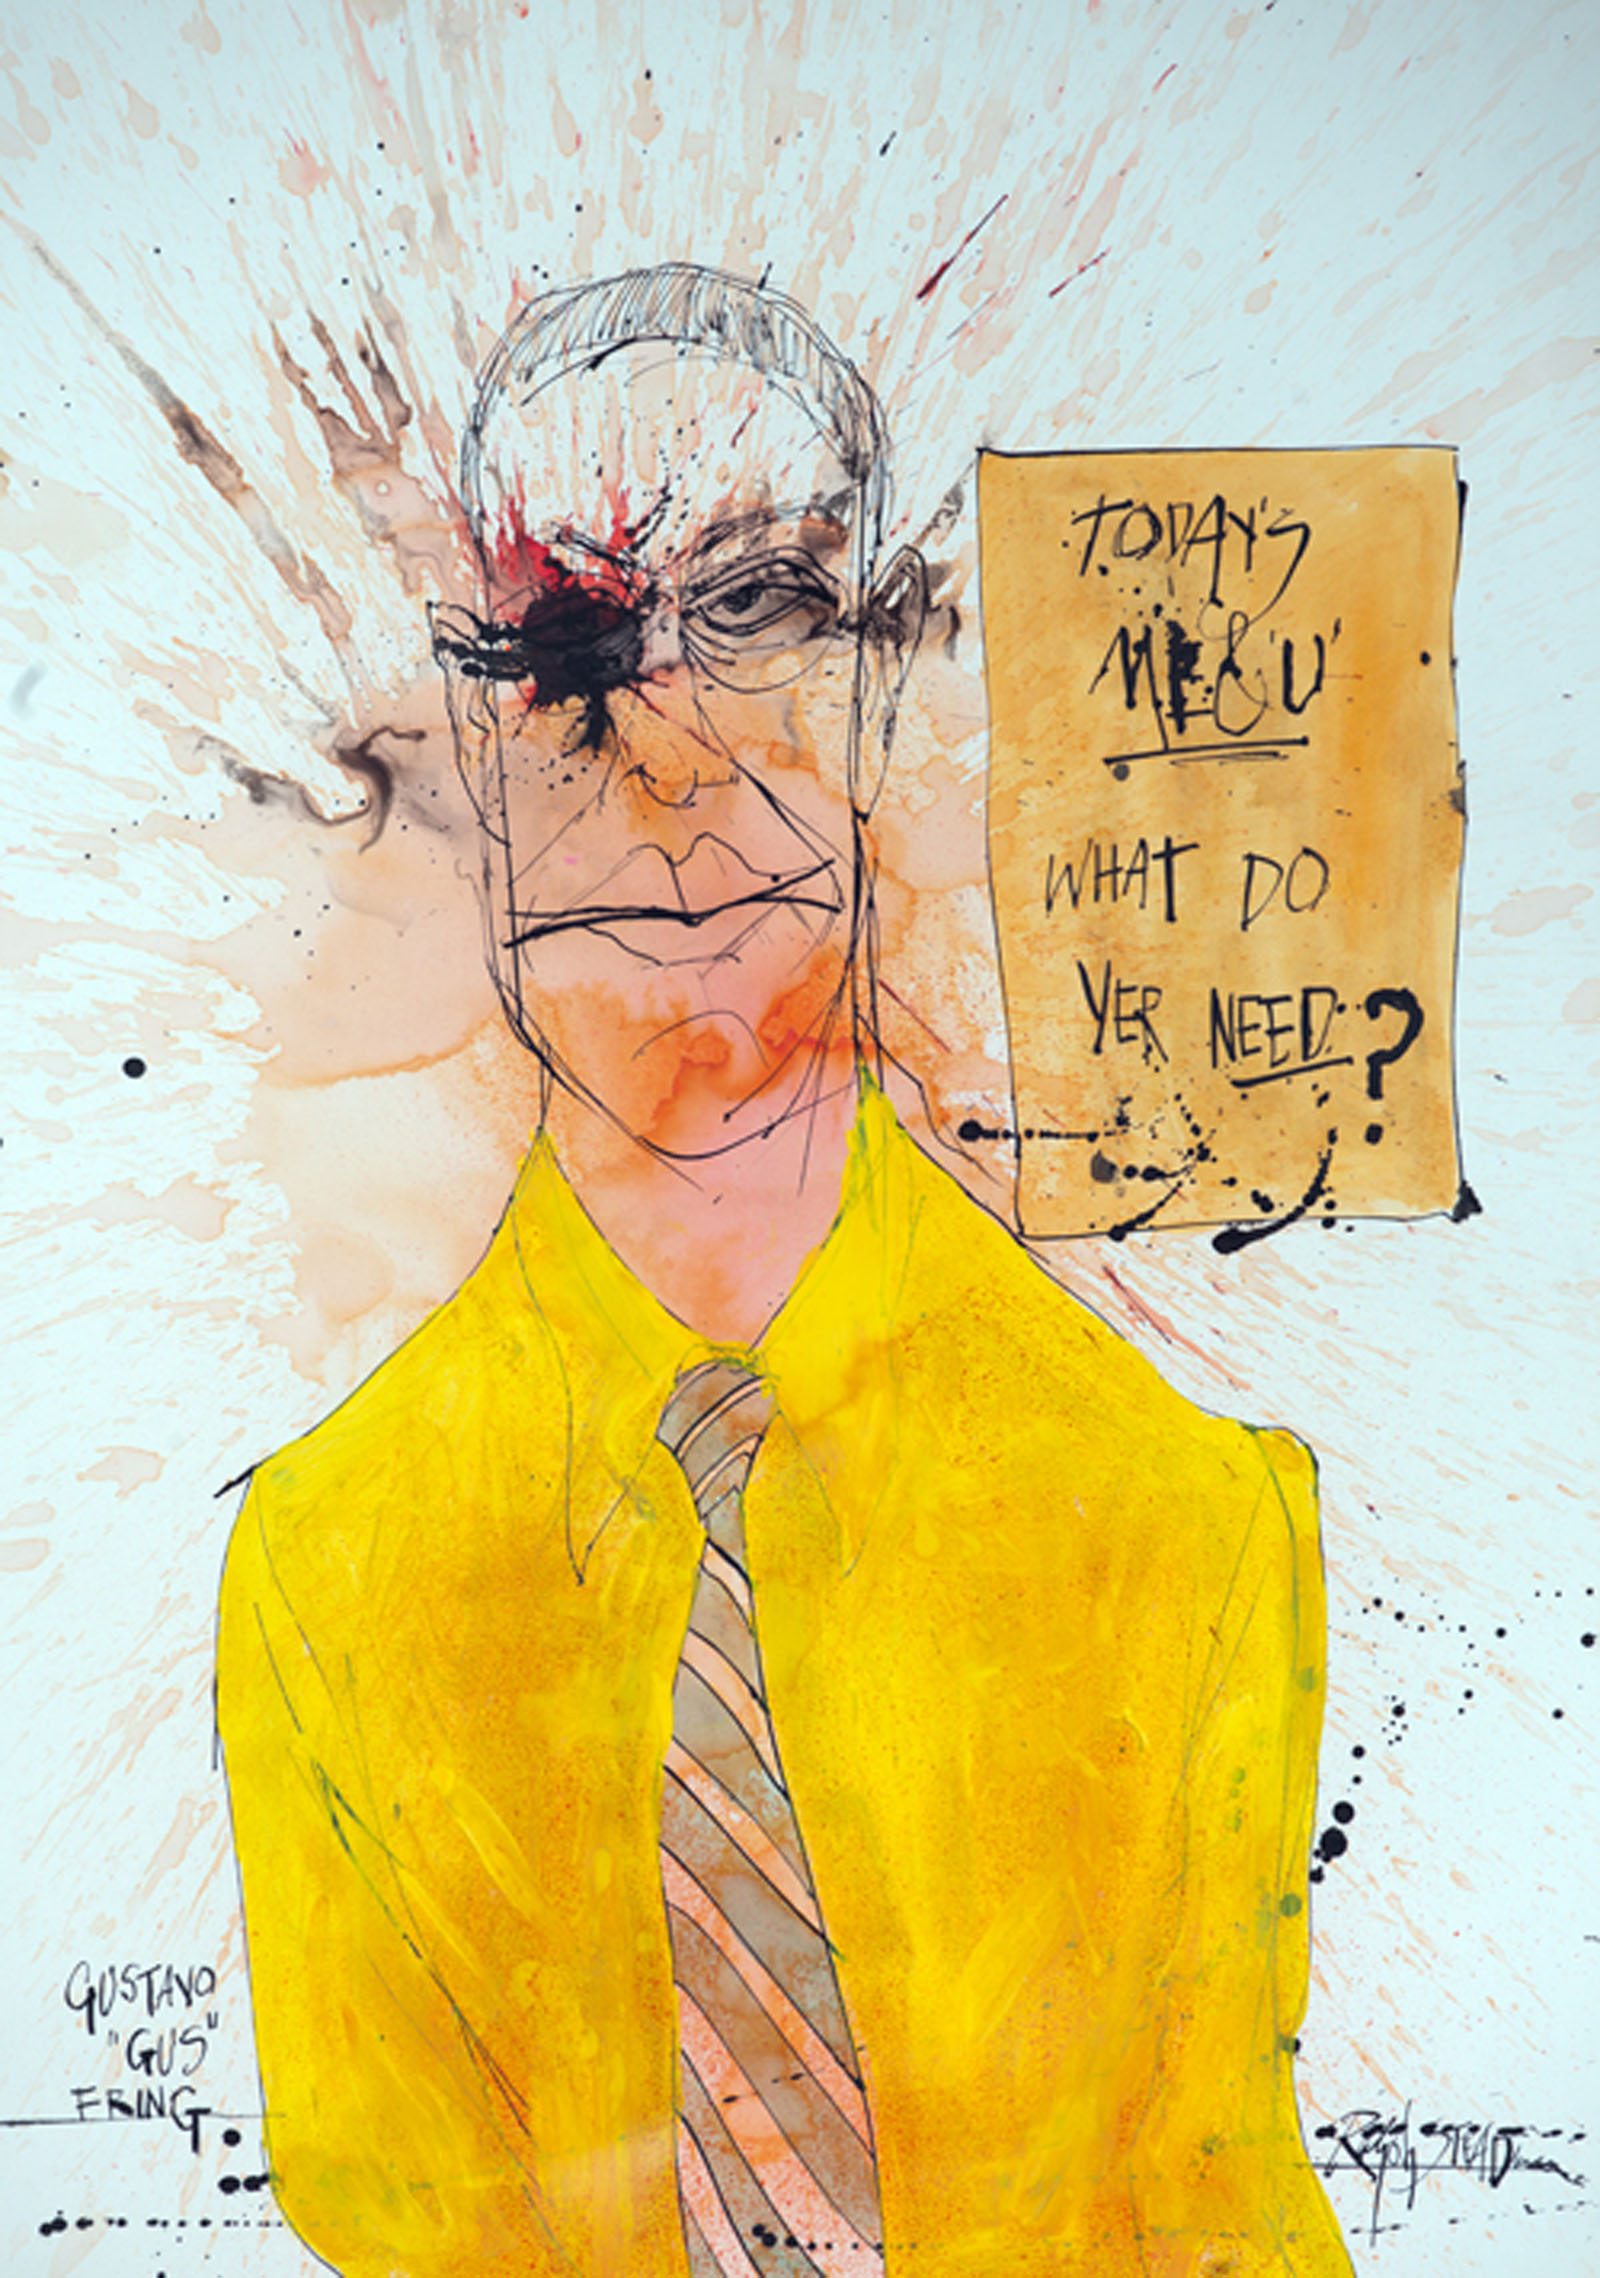 A portrait of the character, Gus from the TV show, Breaking Bad by Ralph Steadman